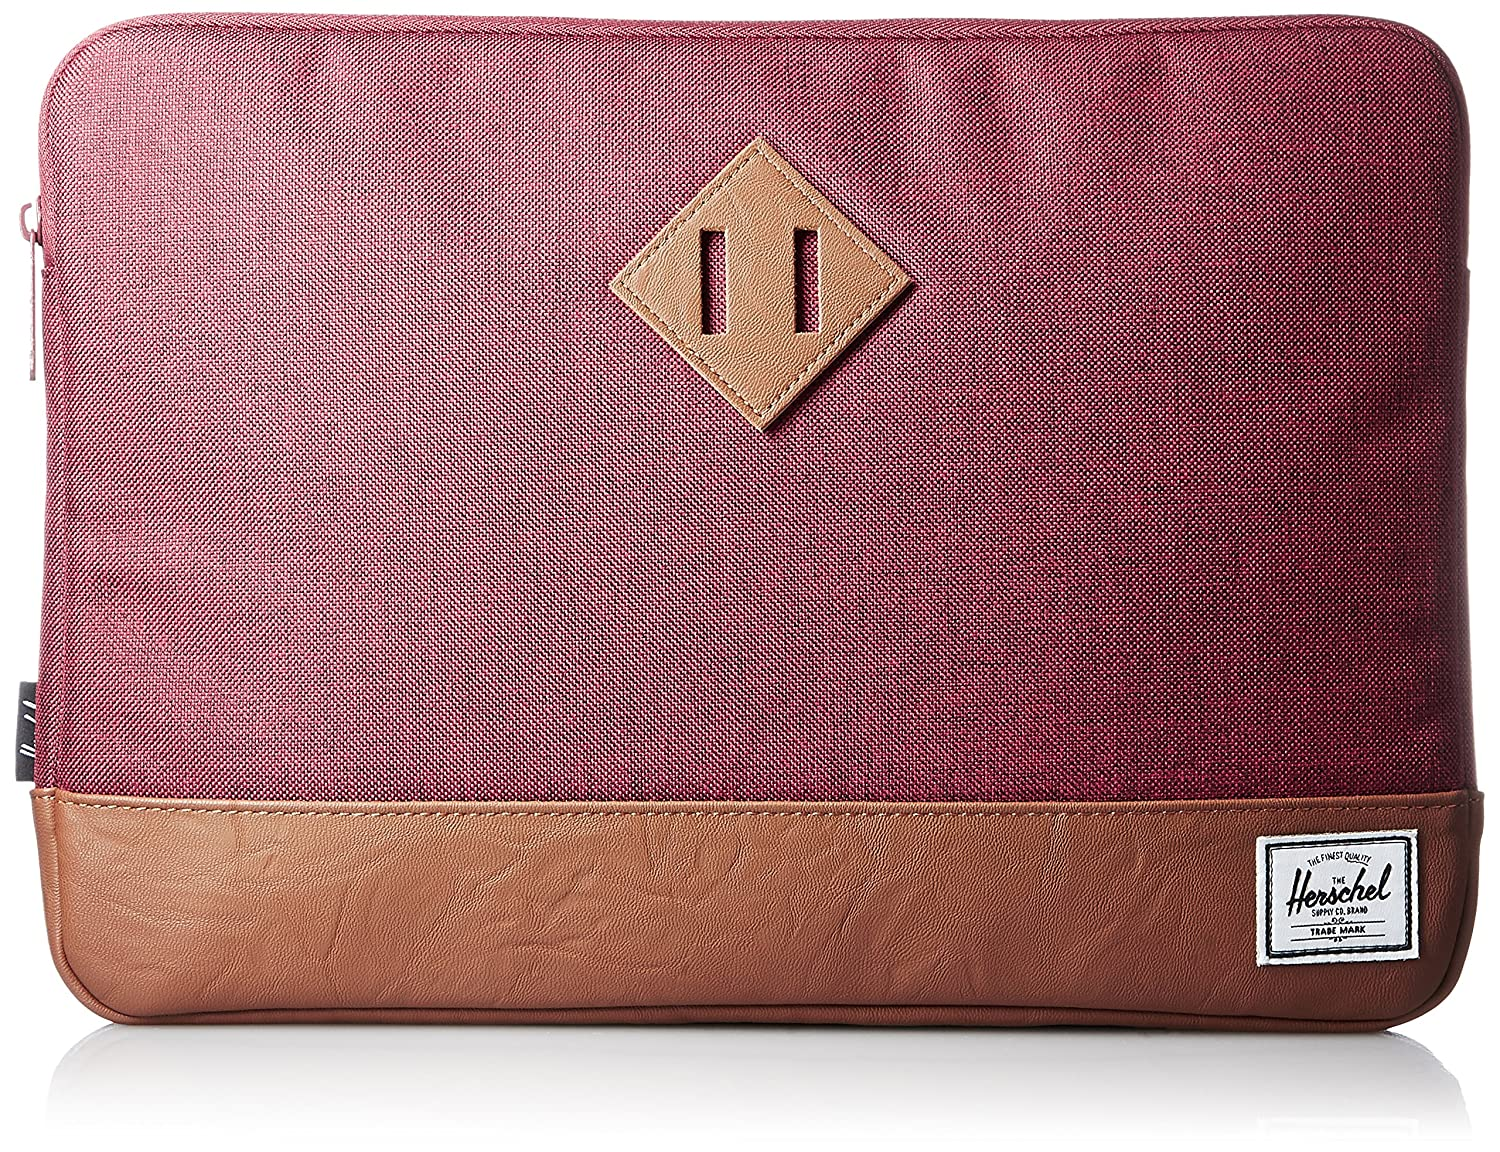 Herschel, Heritage Sleeve Macbook pro 13, winetasting crosshatch, Schutzhü lle 10056-01158-13